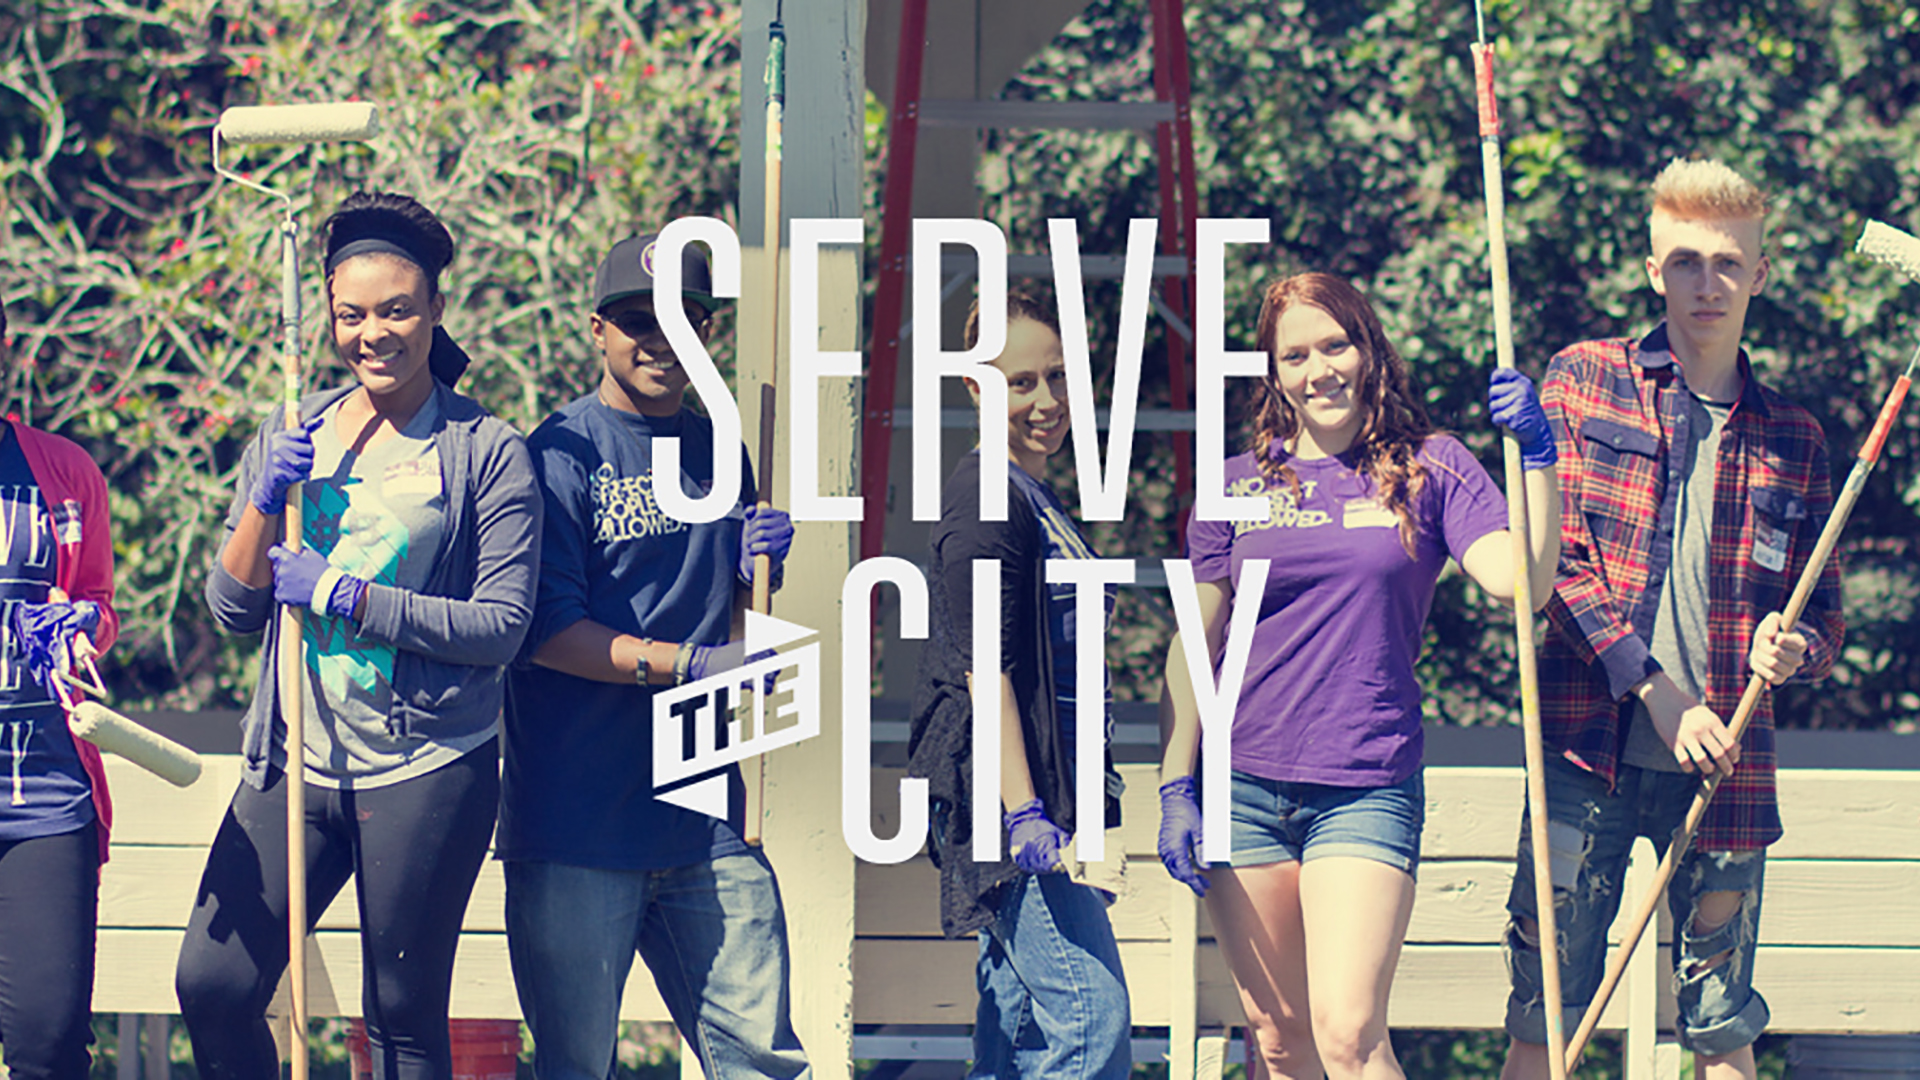 serve-city-web-event_cbg.jpg